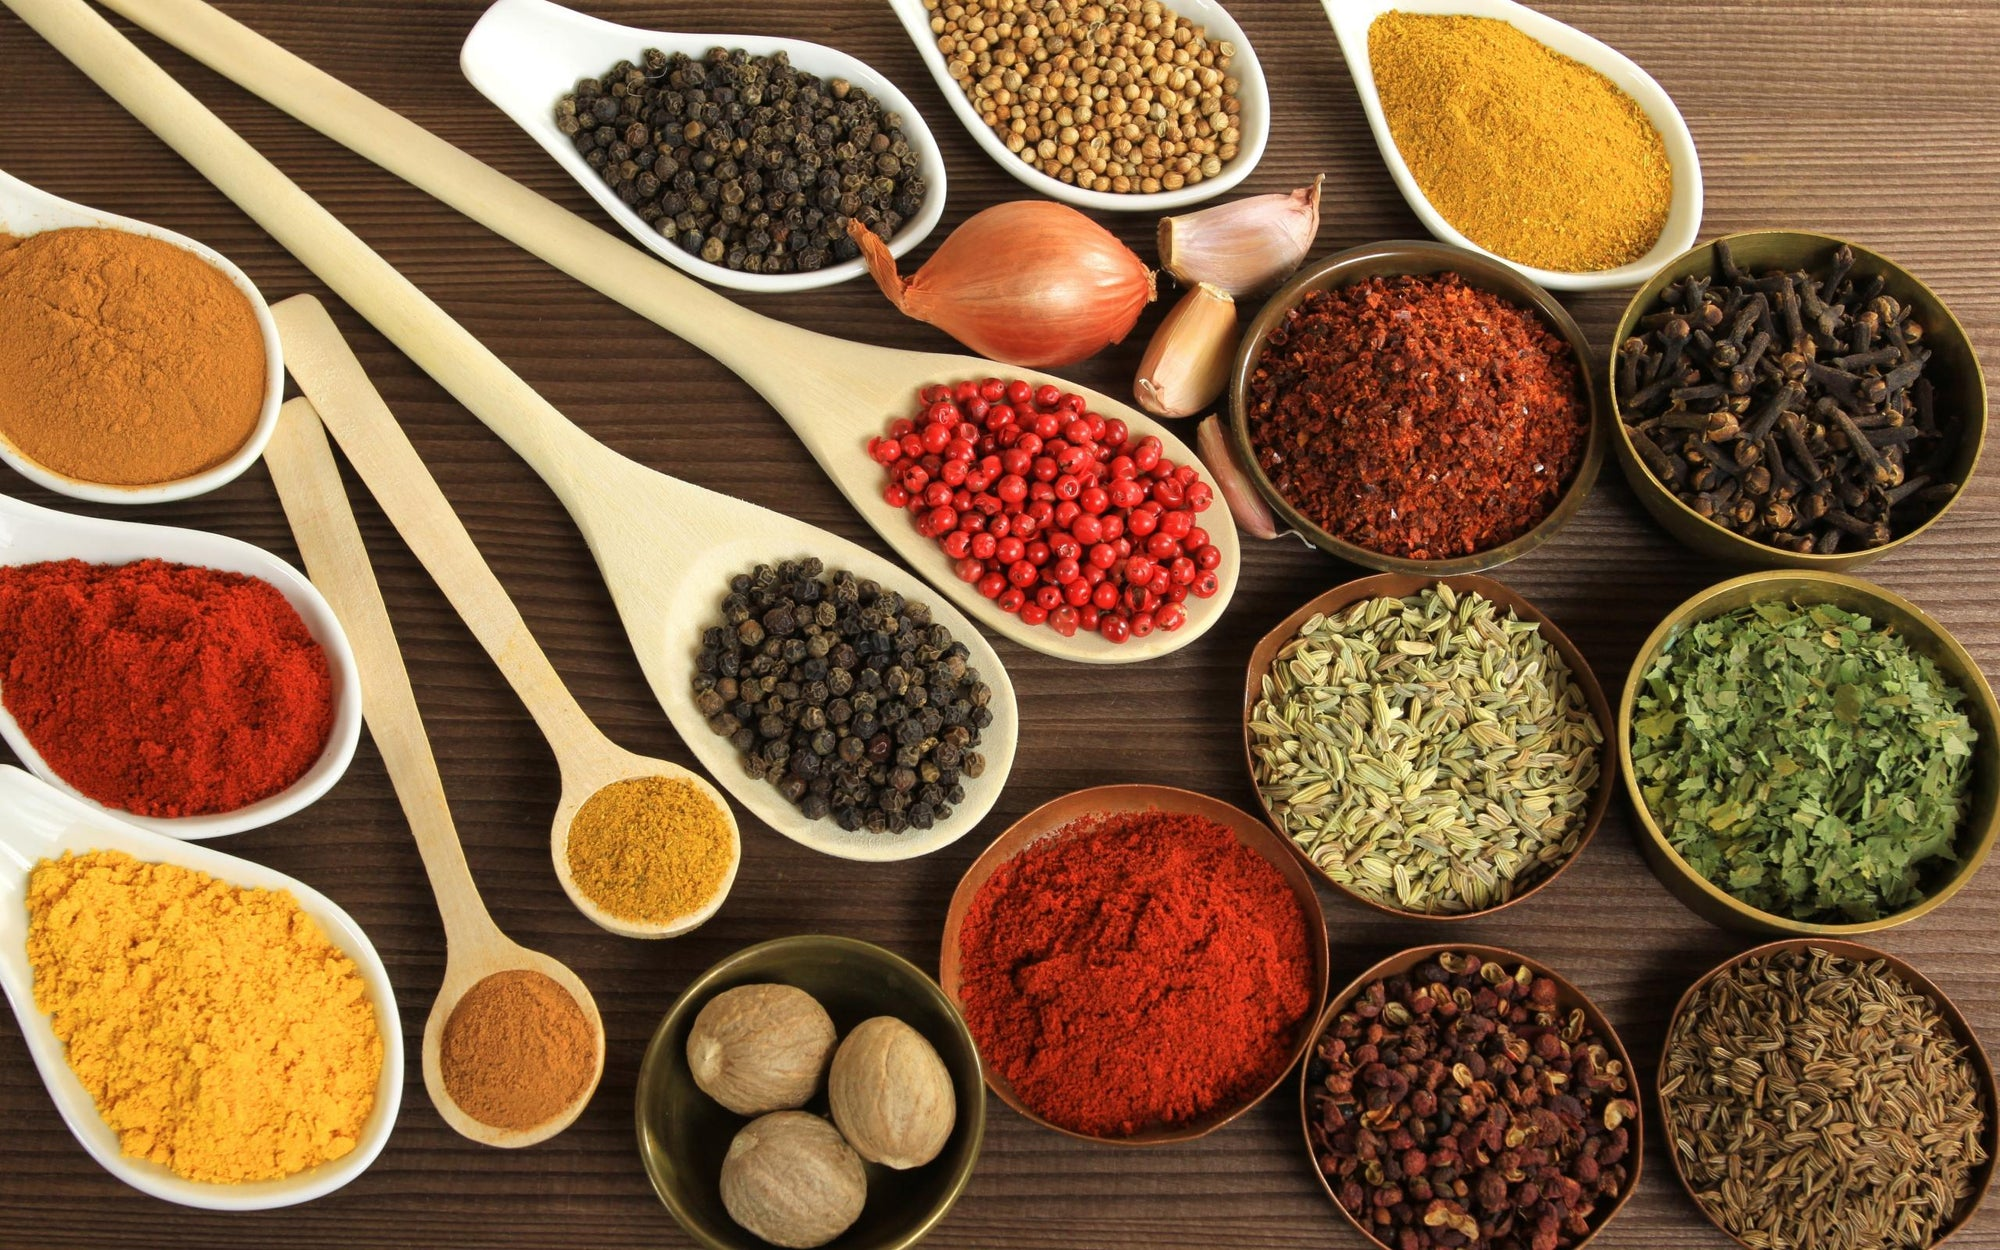 Herbs and Spices that will Assist with Muscle Recovery